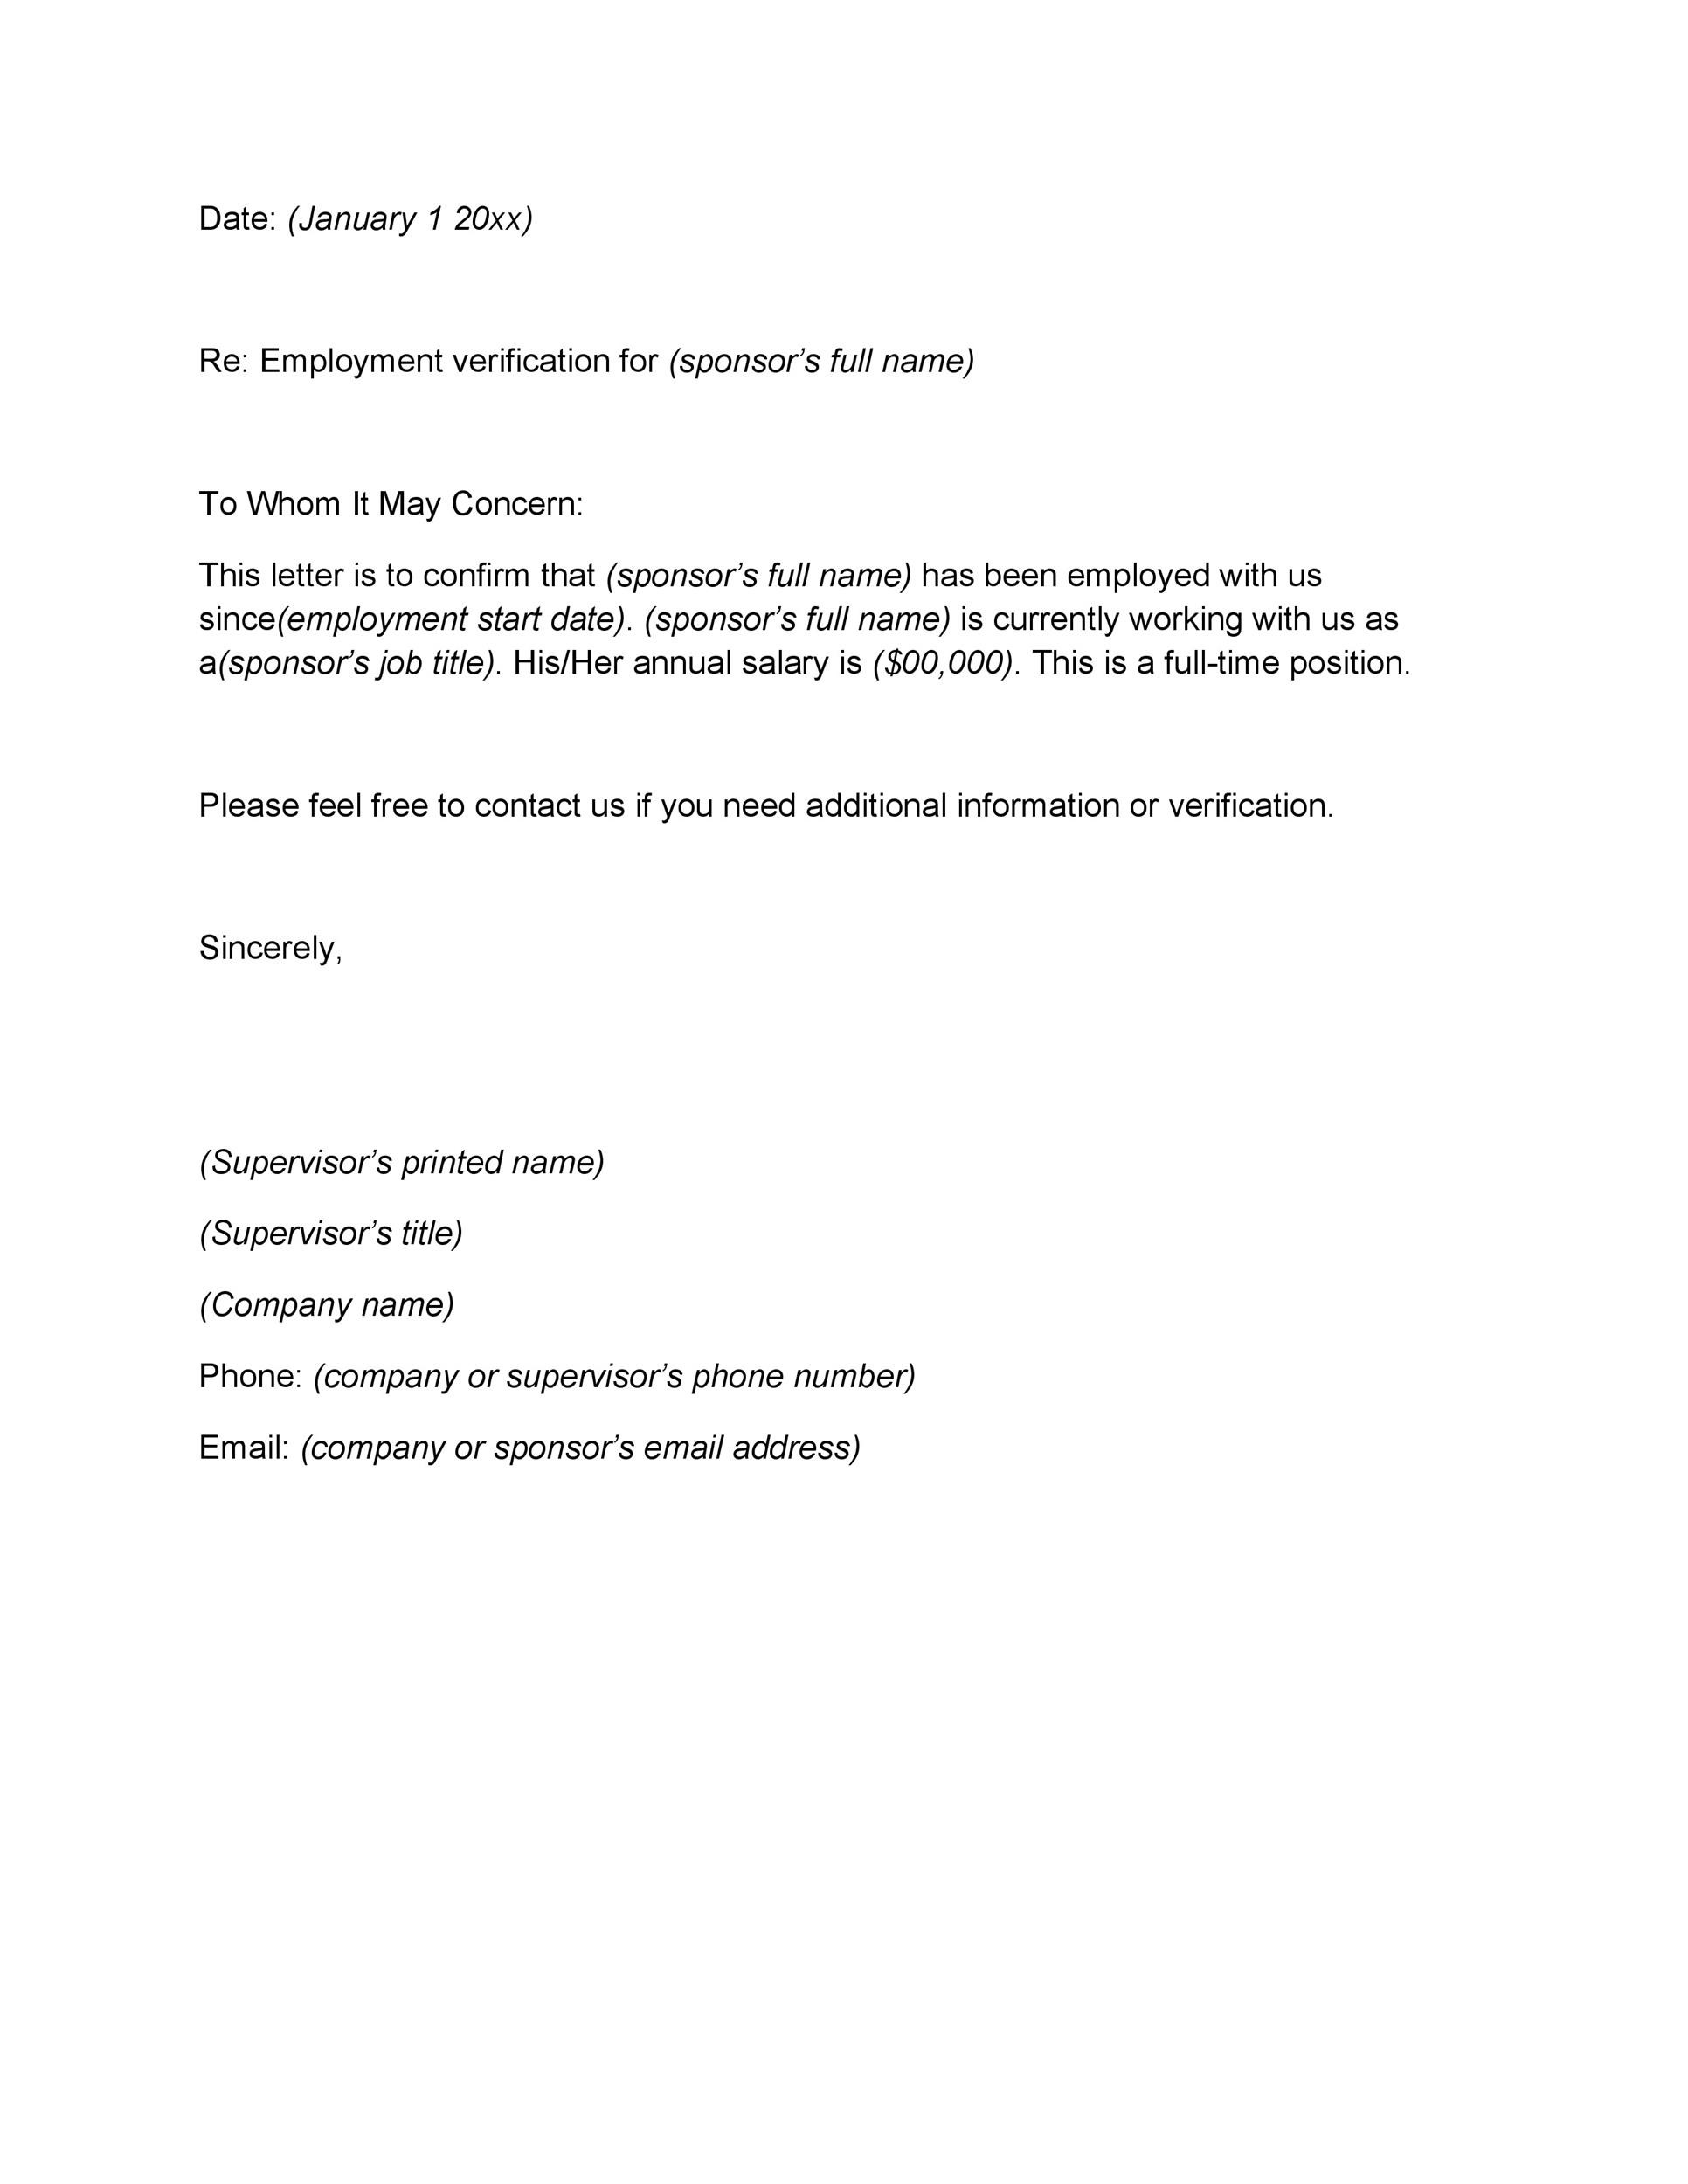 Letter of employment verification template free – Sample of Certification of Employment